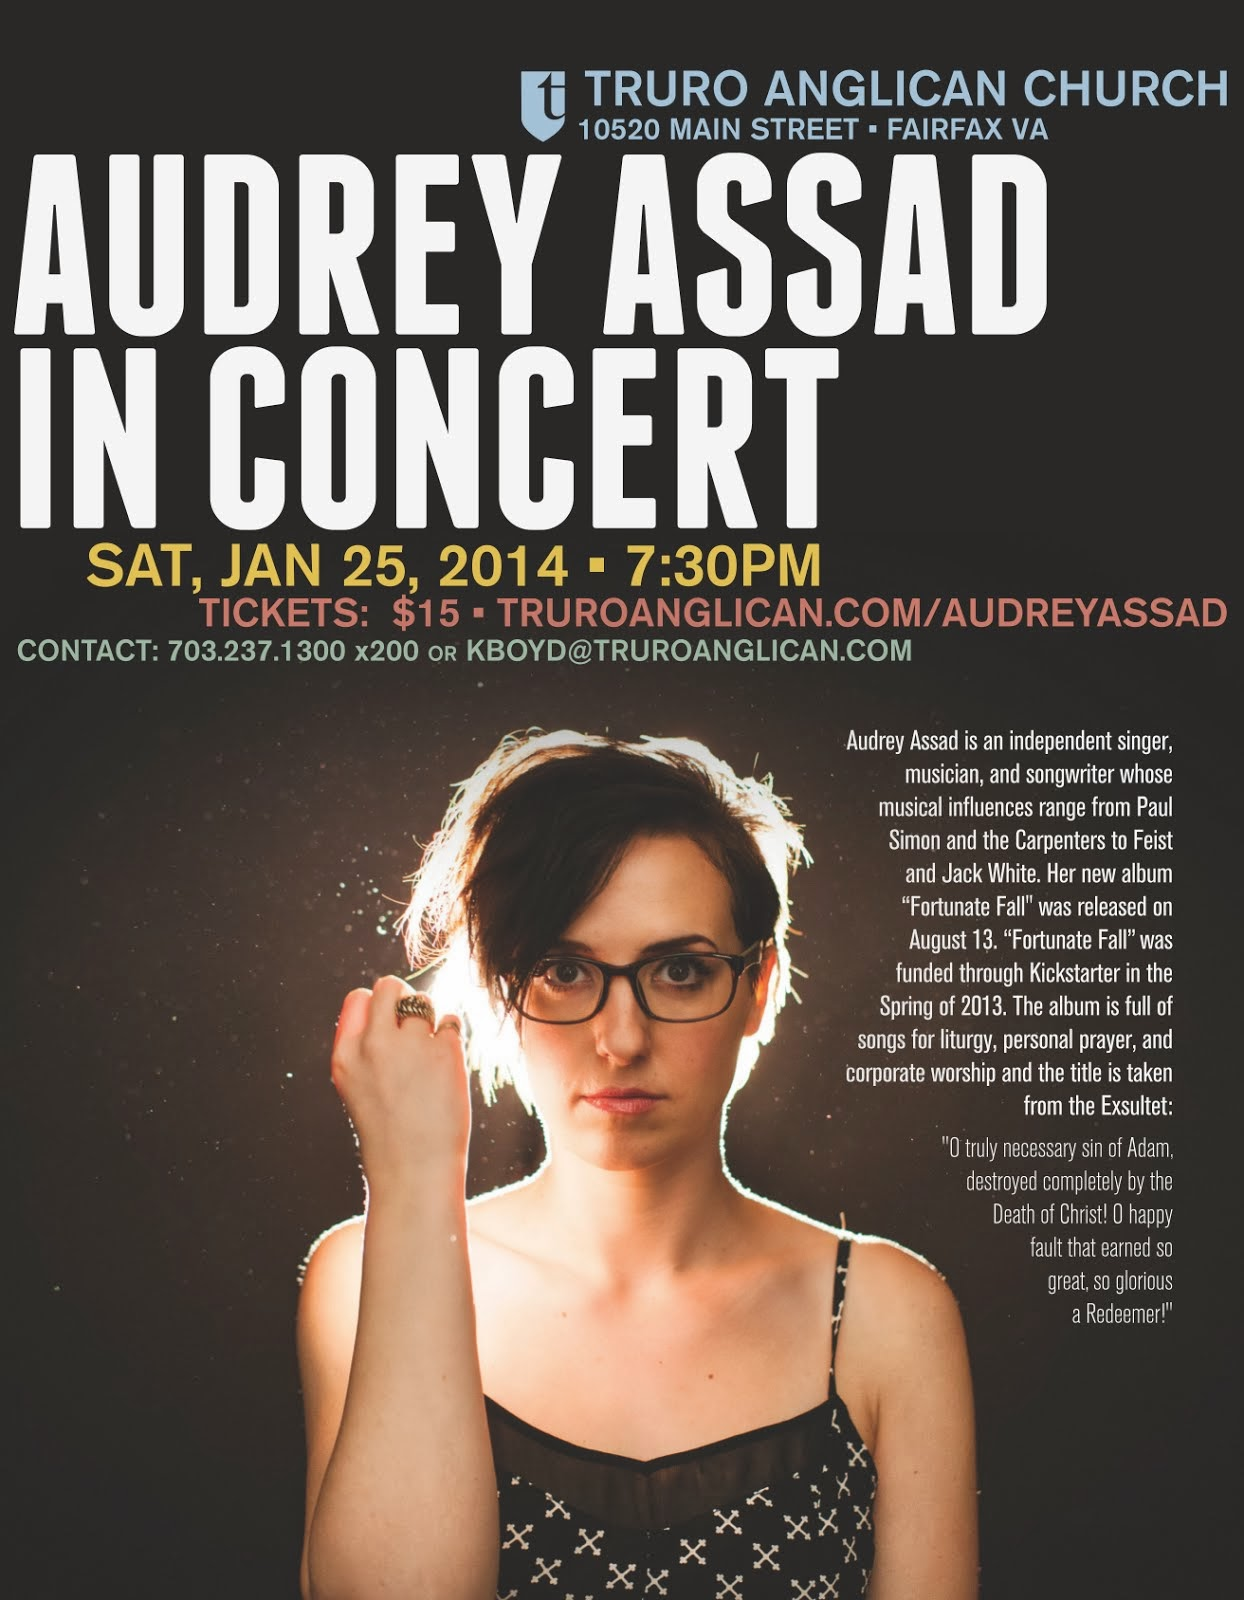 Audrey Assad in Concert